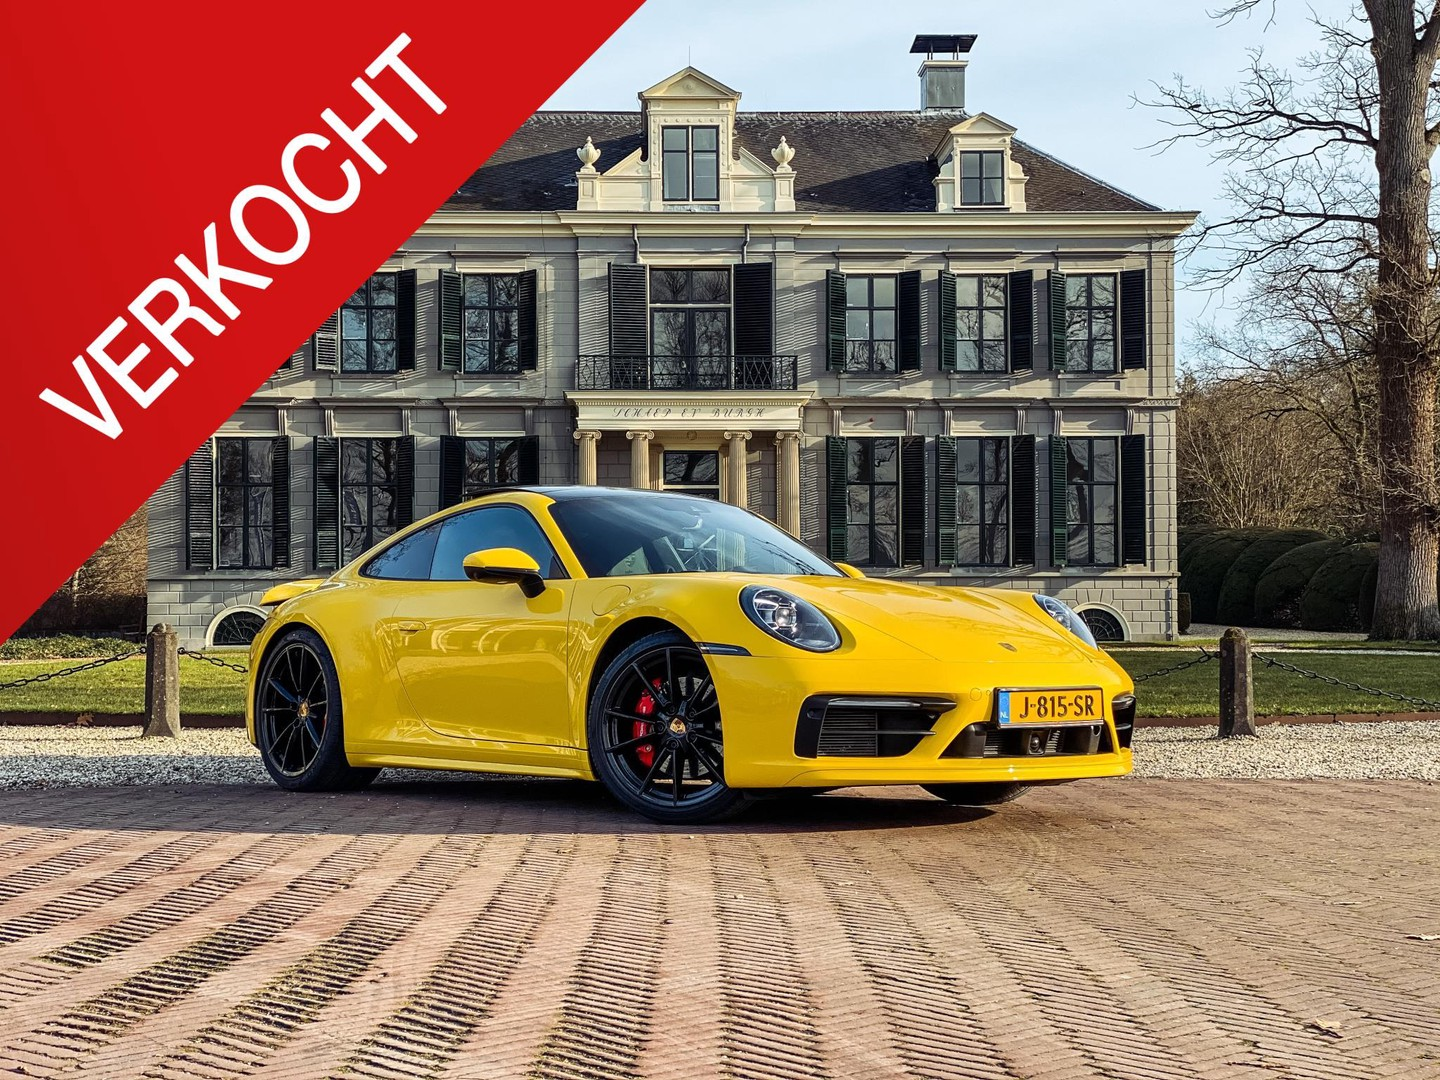 Porsche 911 3.0 carrera s btw-auto/ sport chrono/ speed yellow/ schuifdak/ nw prijs 225.000,-!